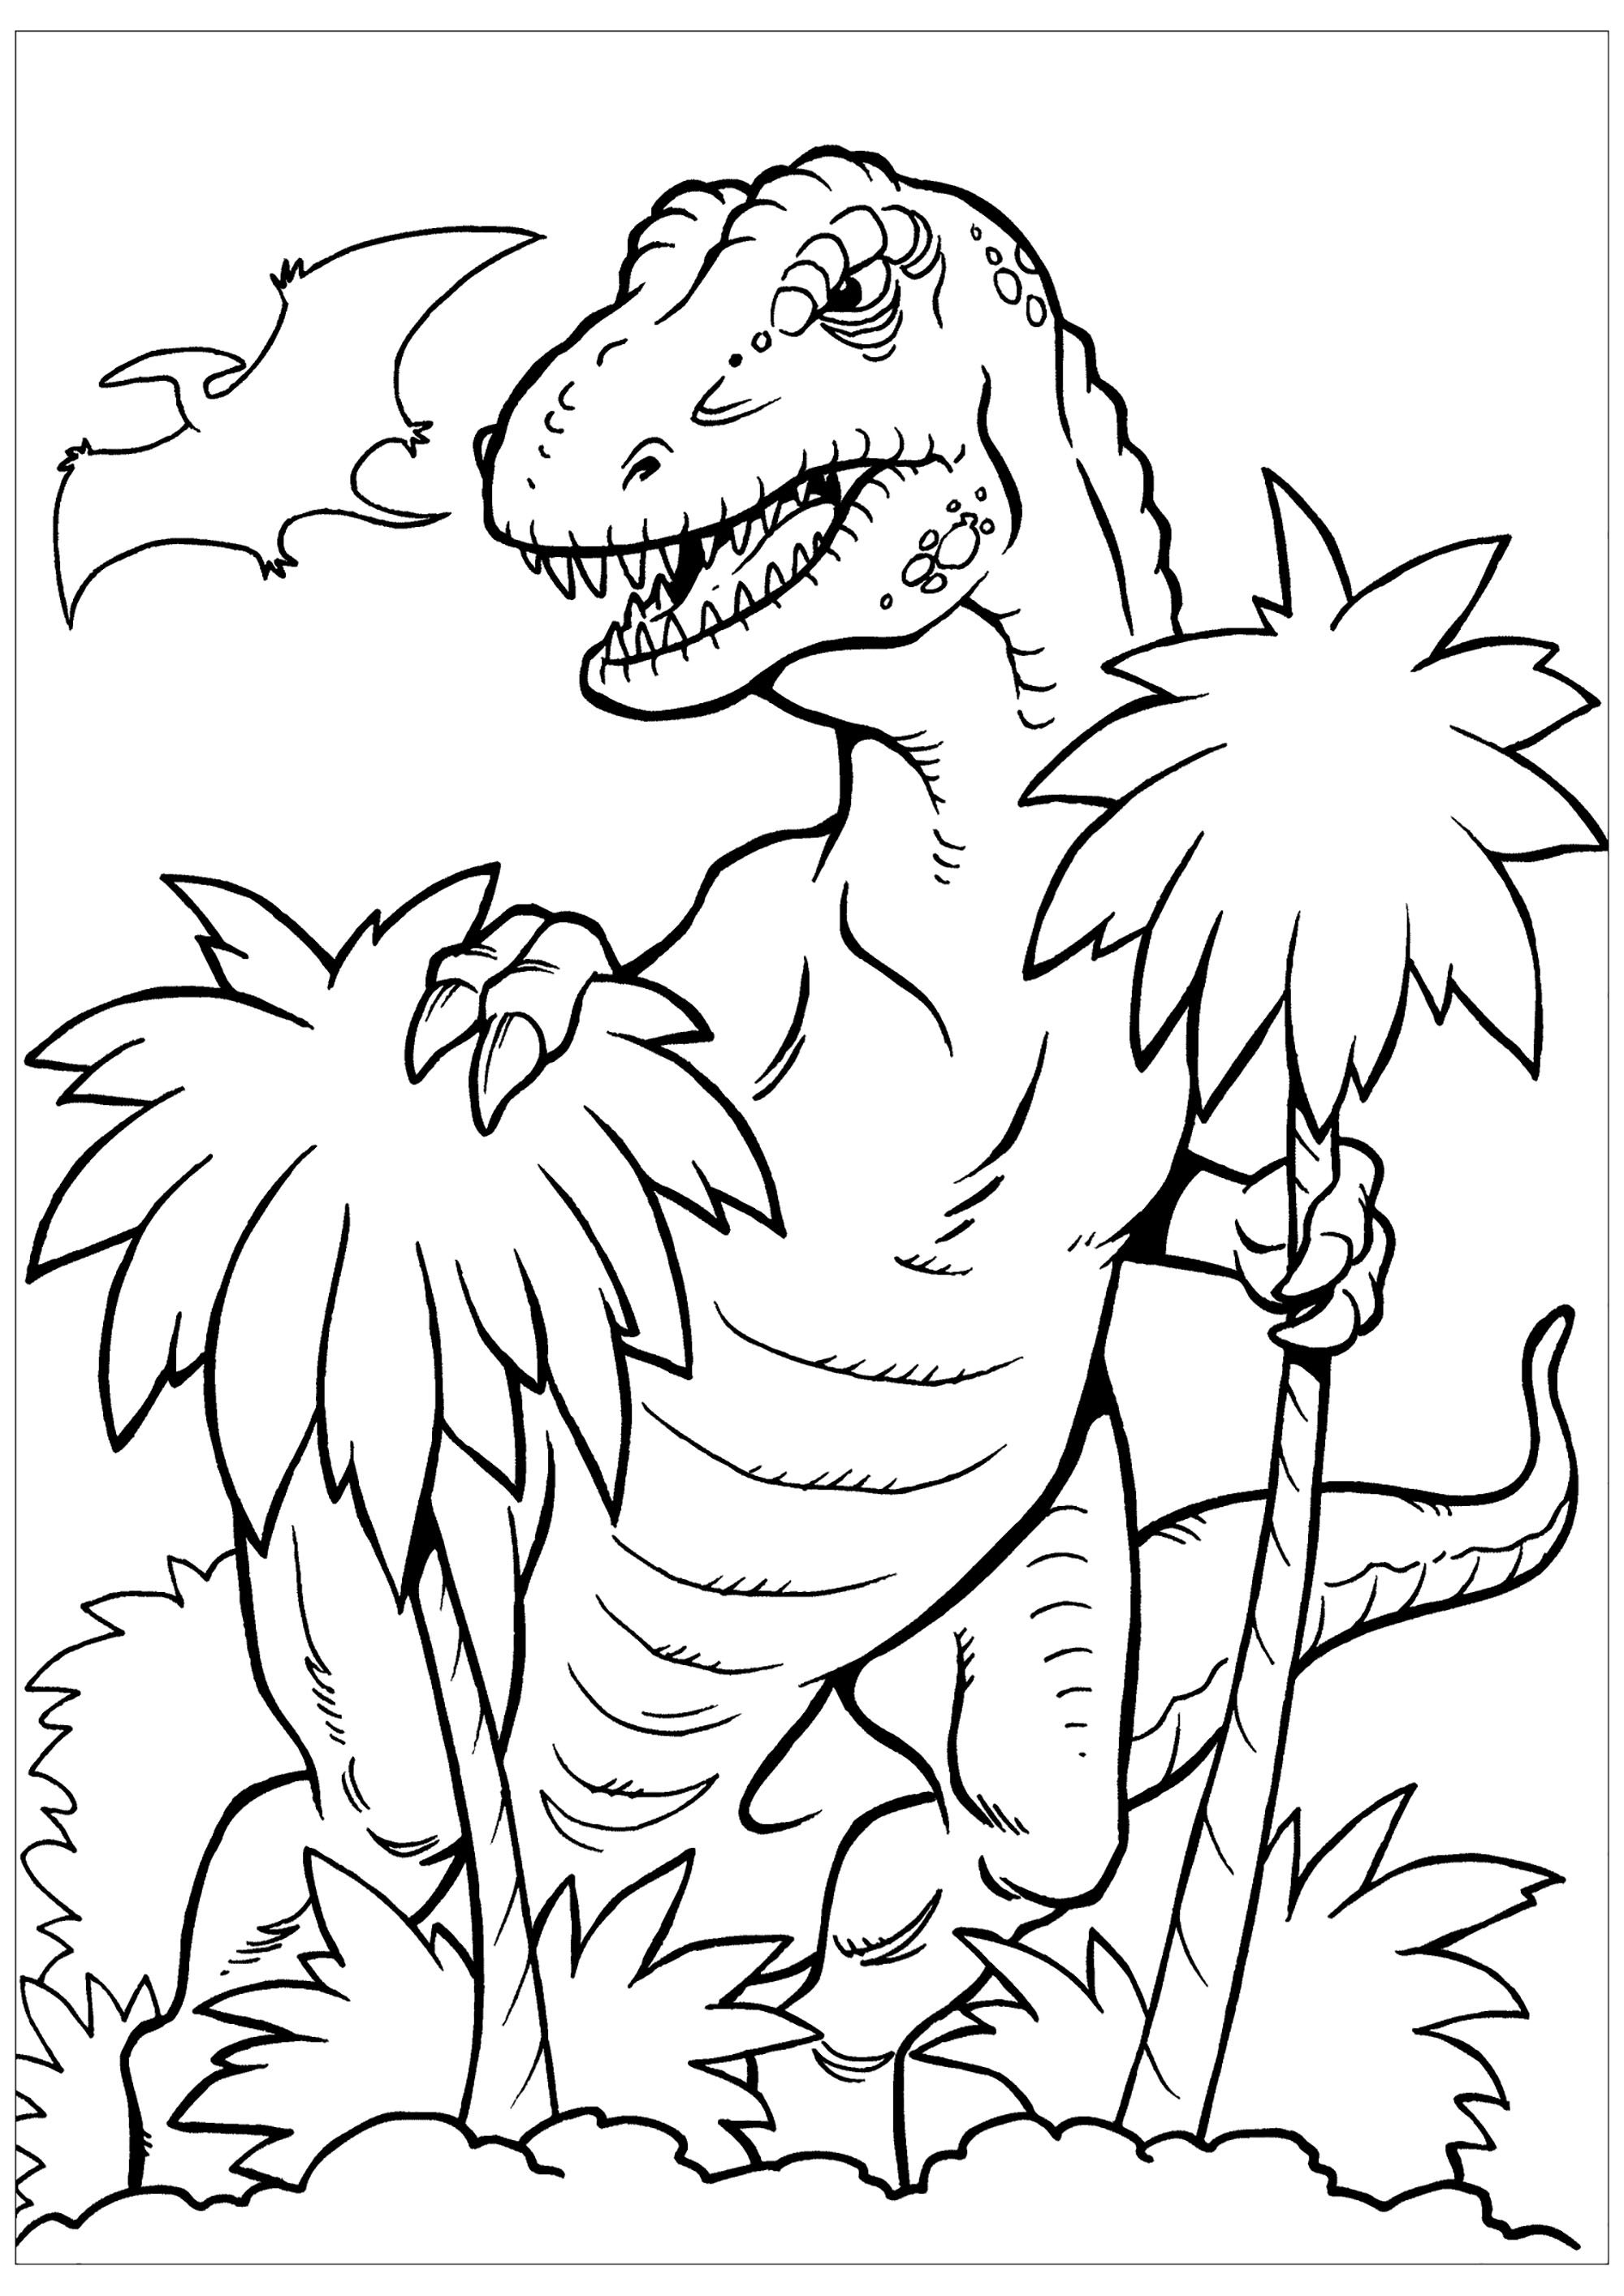 Dinosaurs for kids - Dinosaurs Kids Coloring Pages